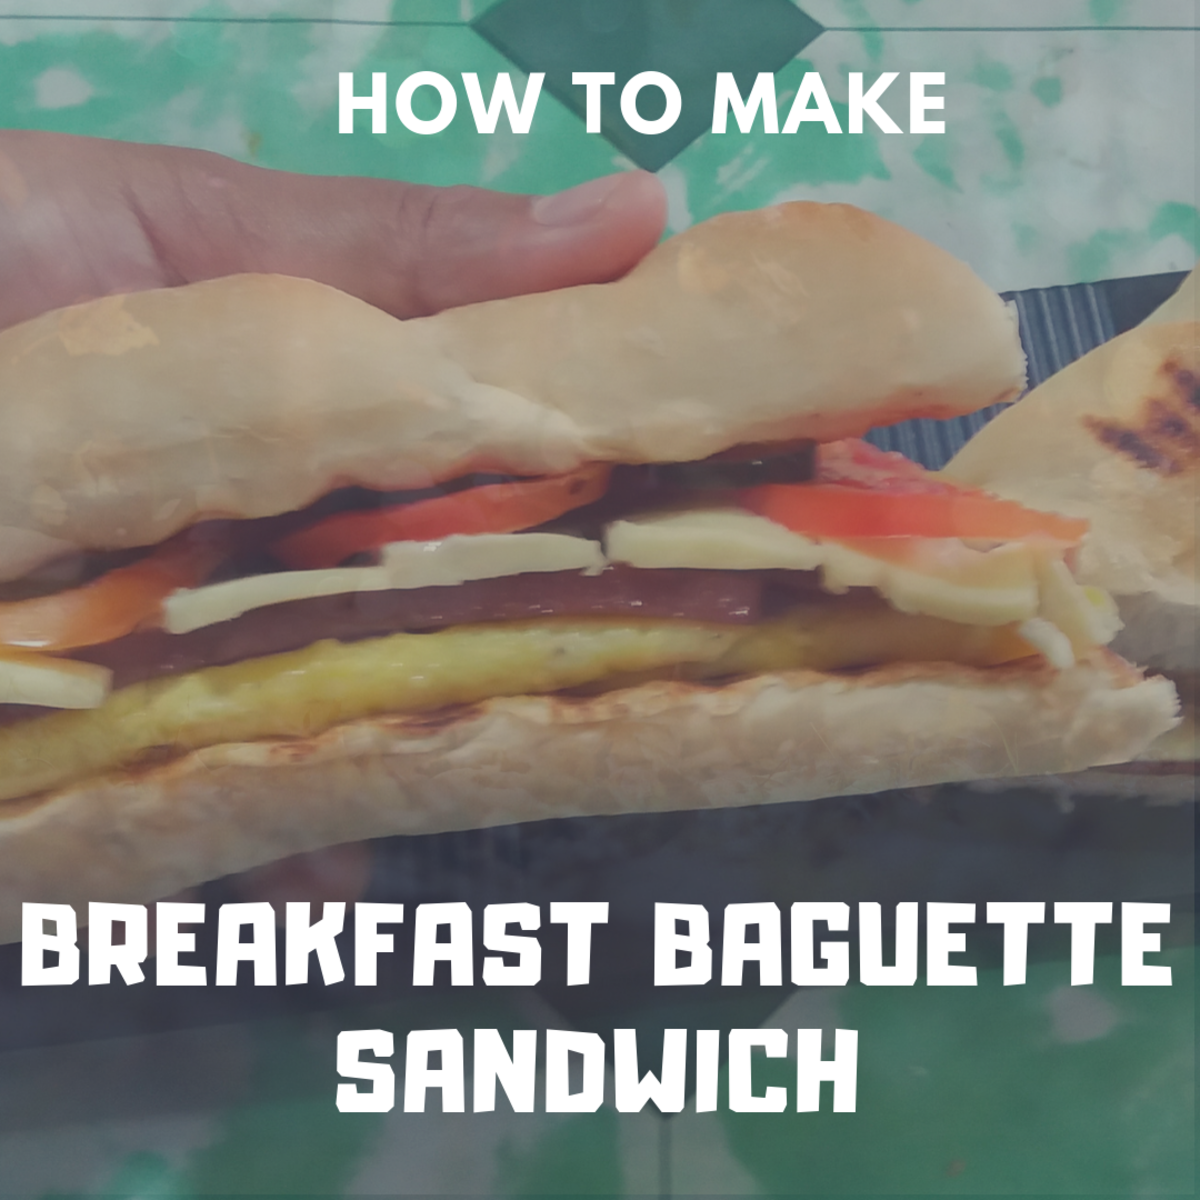 How to Make a Breakfast Baguette Sandwich